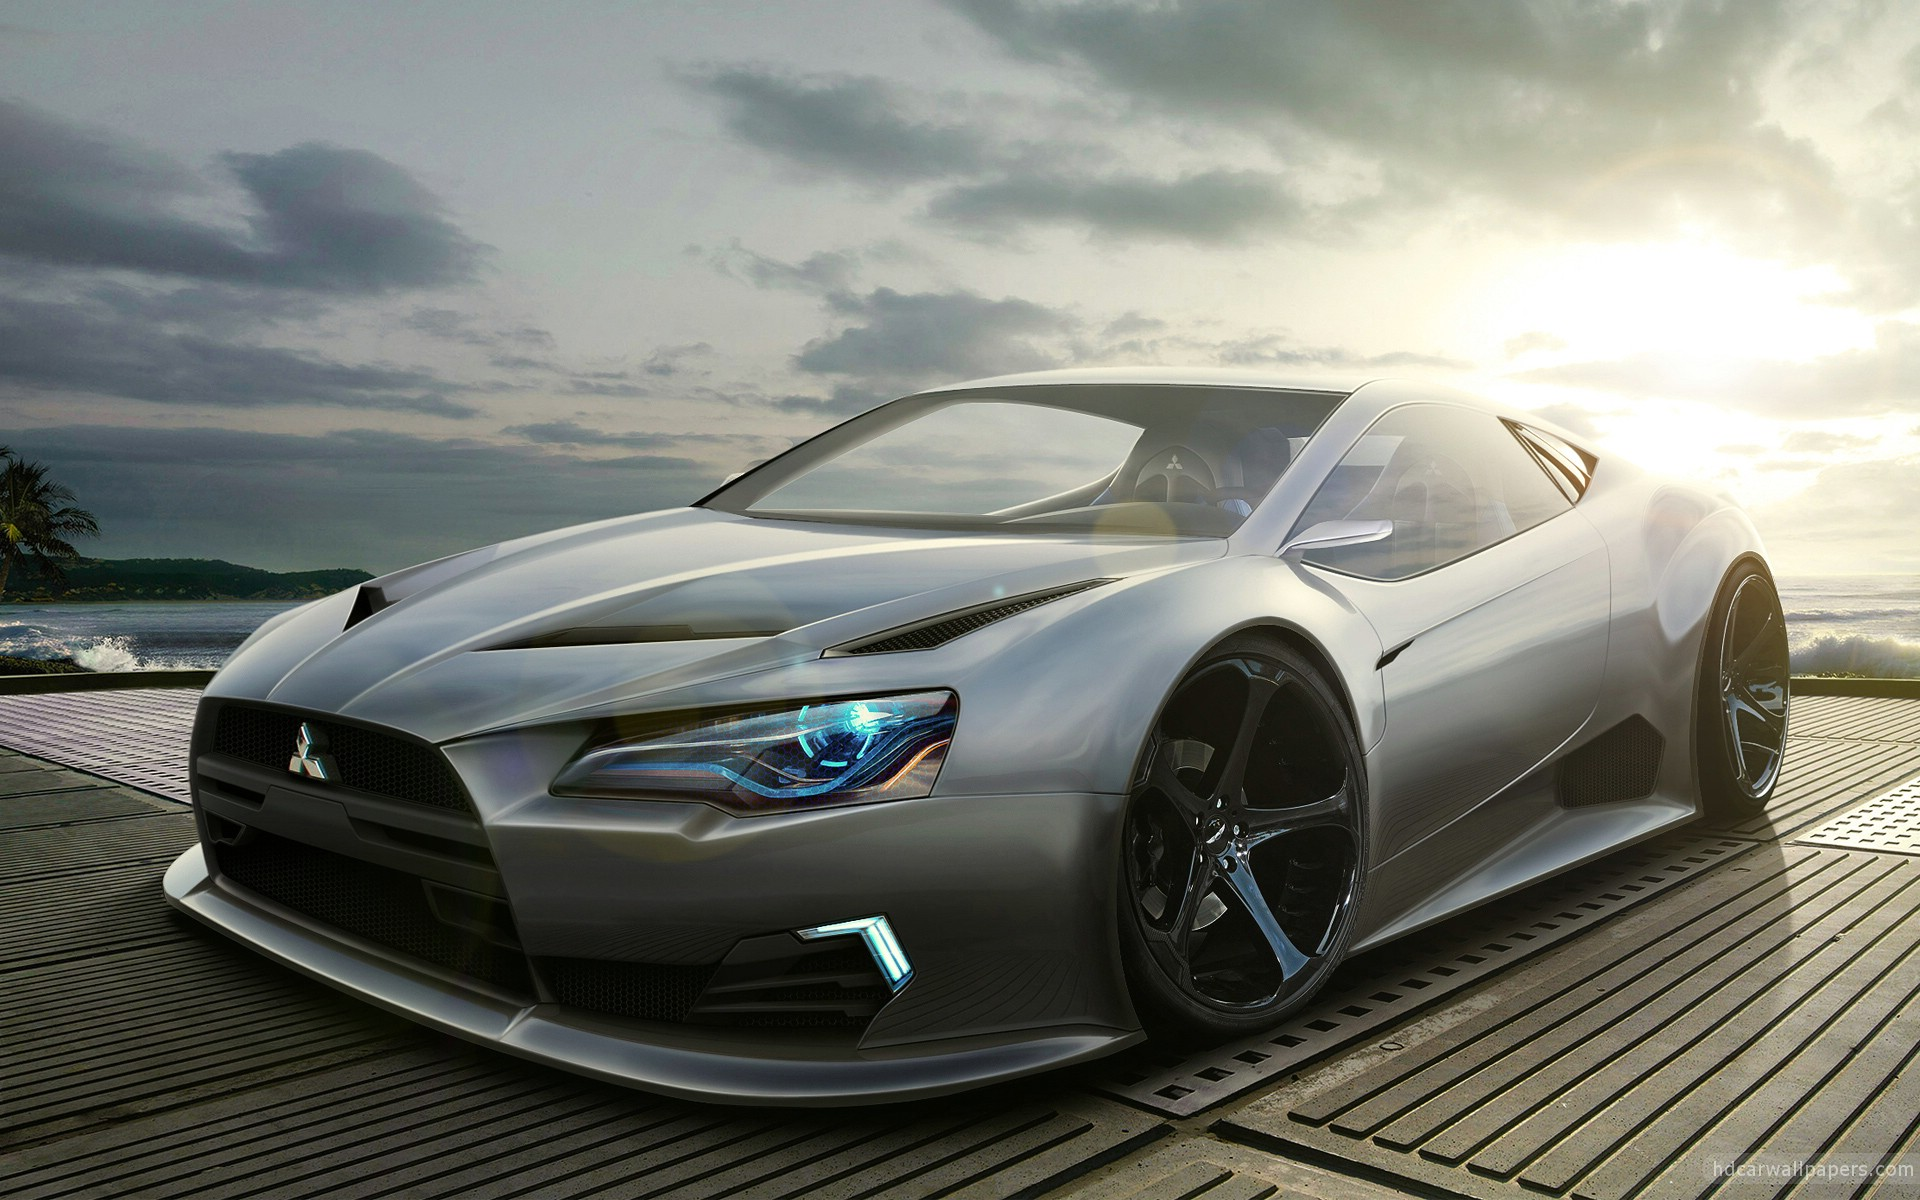 Mitsubishi Concept Wallpaper HD Car Wallpapers 1920x1200